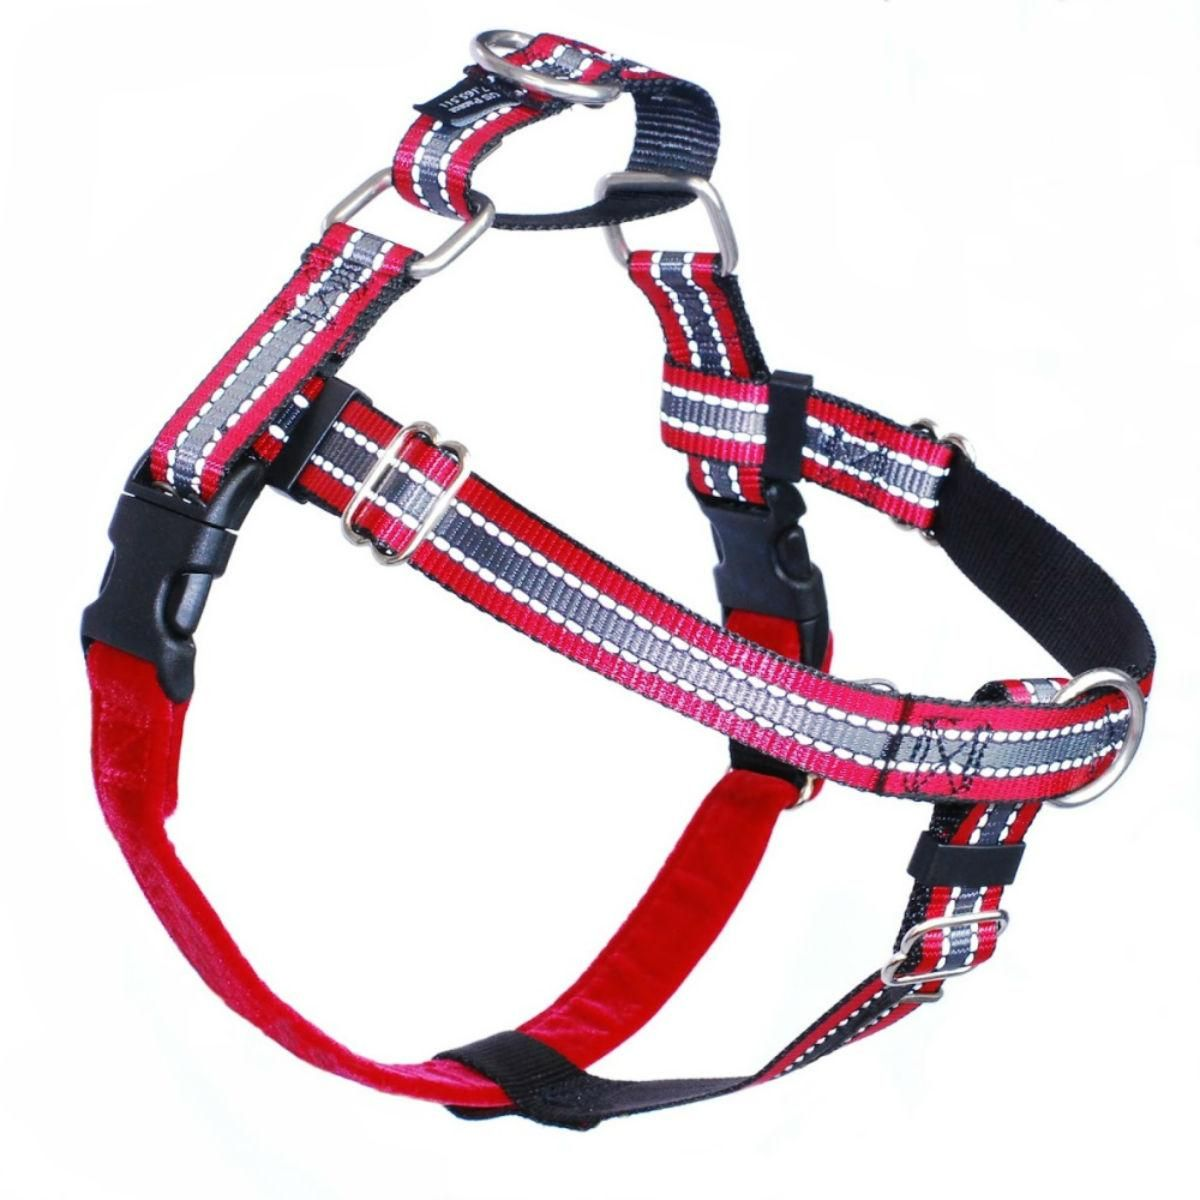 No Pull Dog Harness Deluxe Training Package Red Reflective Dog Harness Dog Weight Reflective Dog Harness